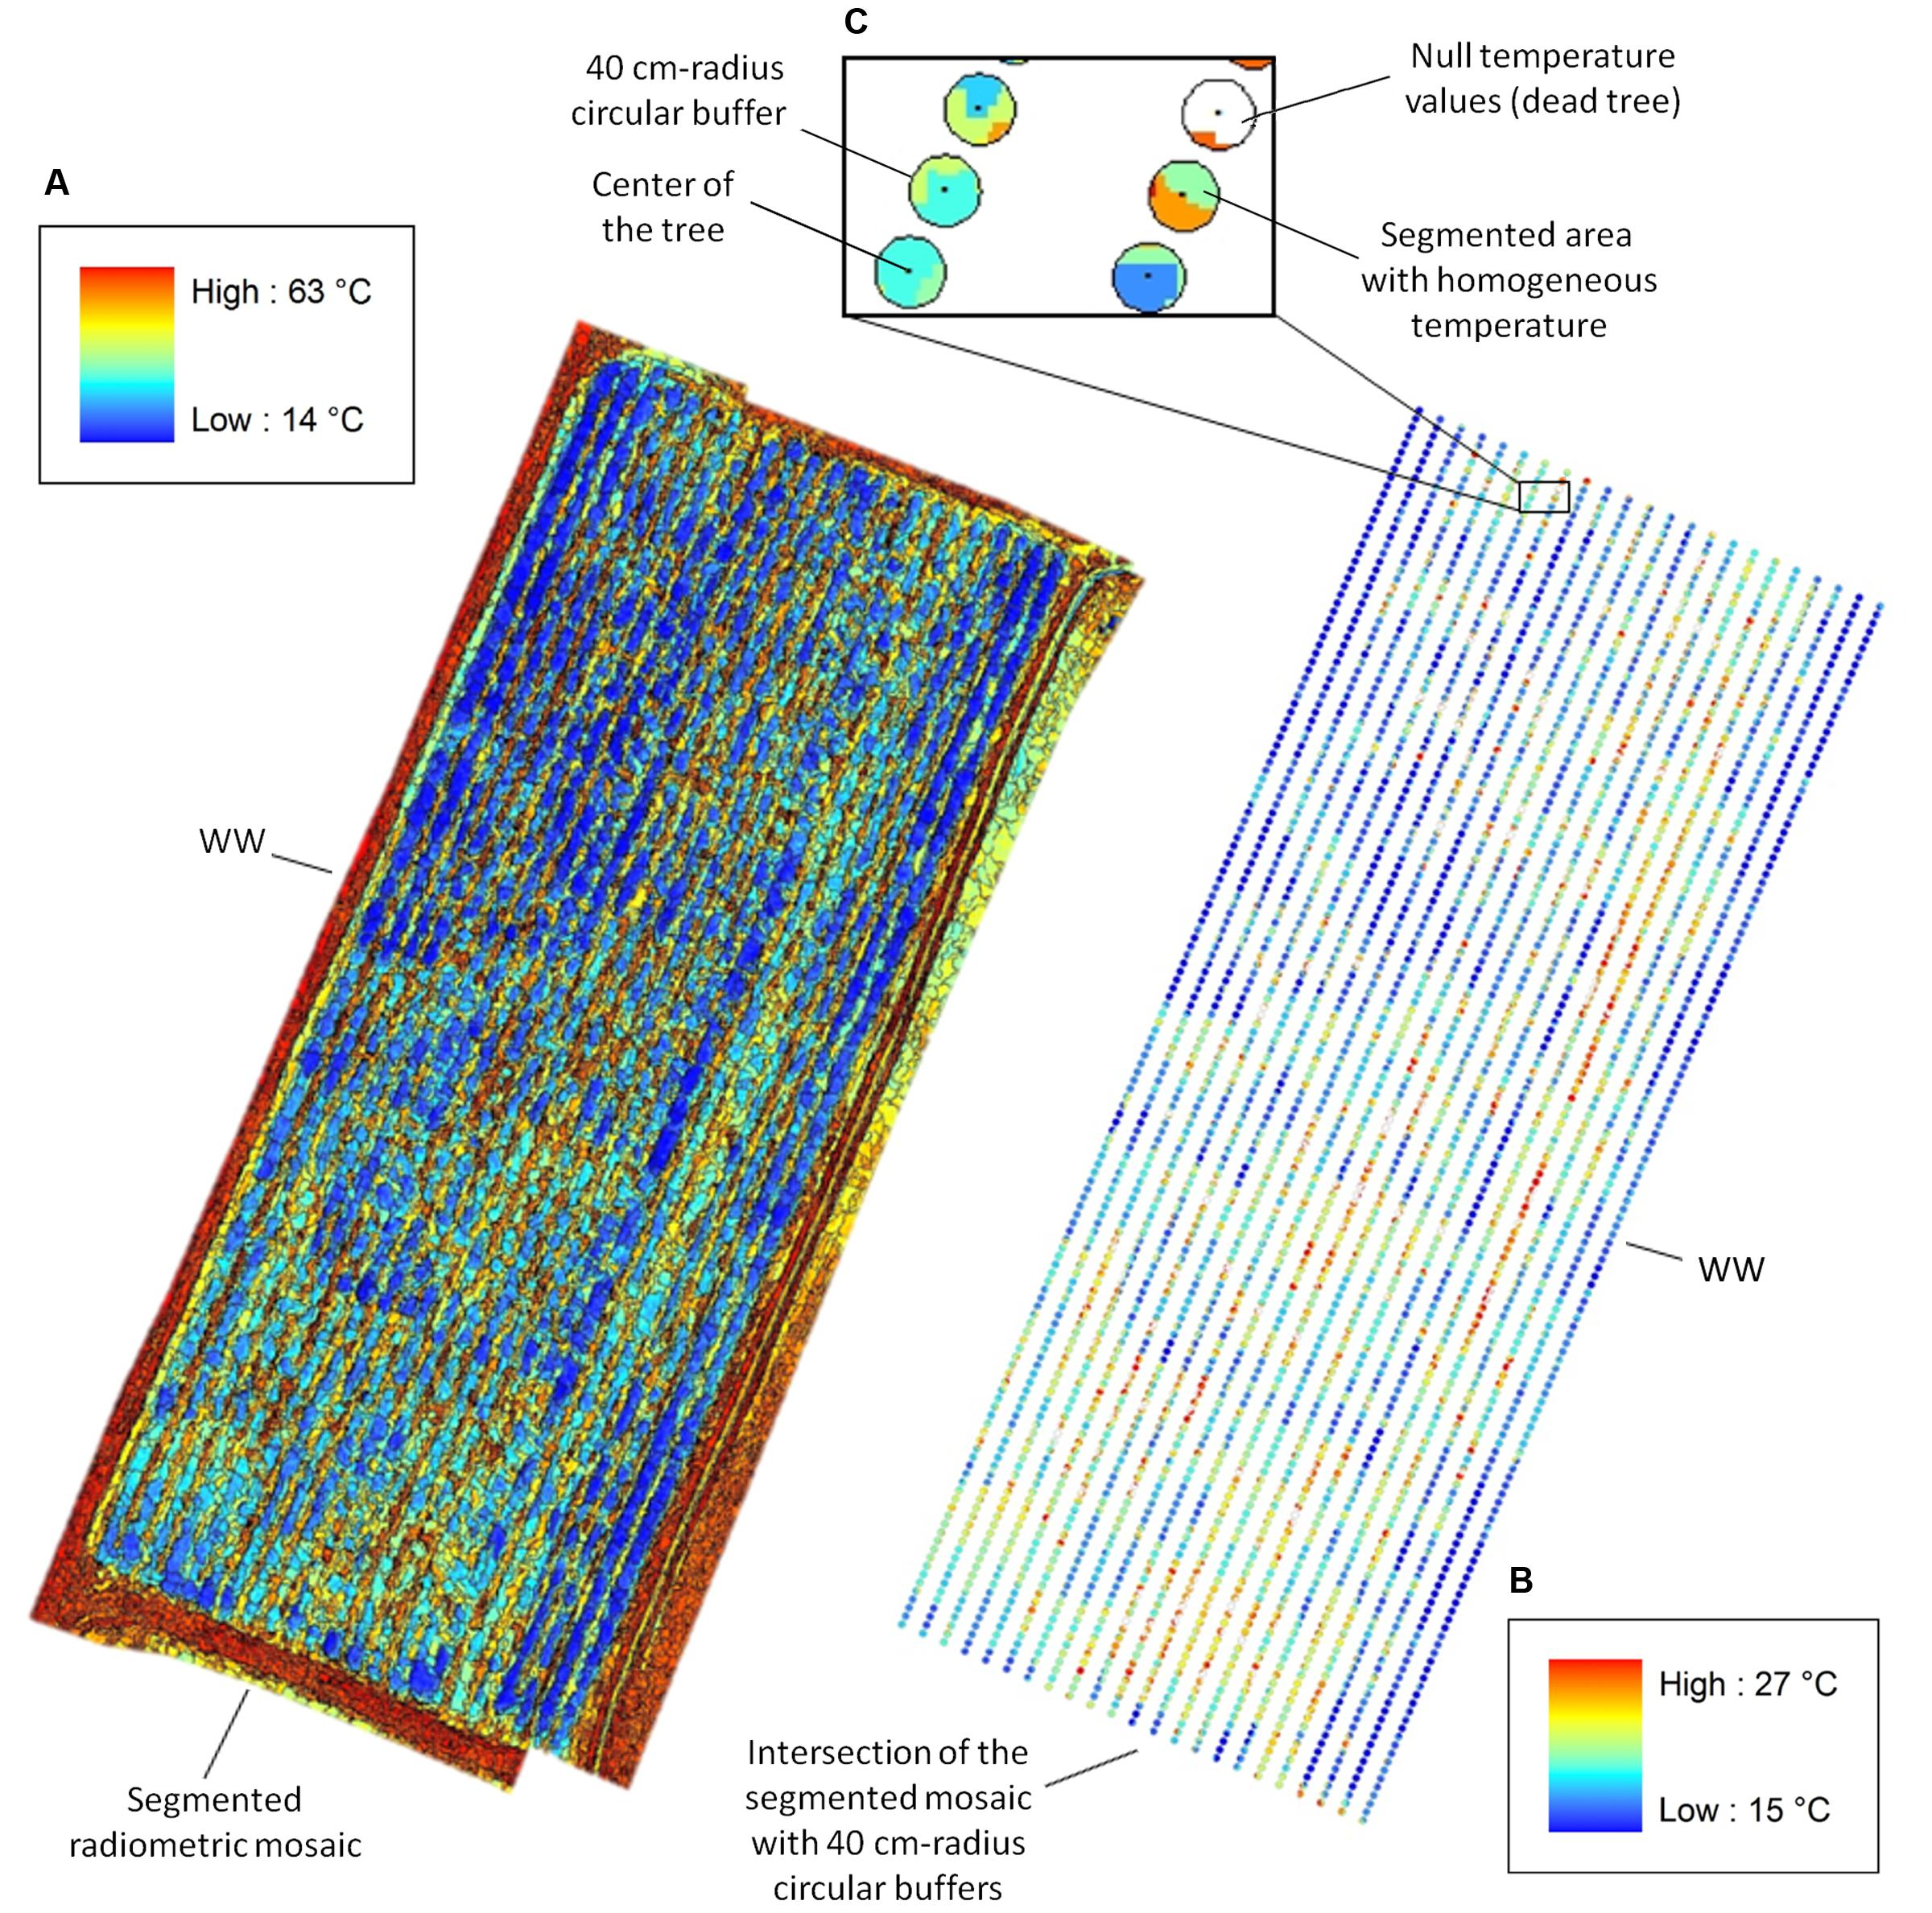 Frontiers | UAV-Based Thermal Imaging for High-Throughput Field